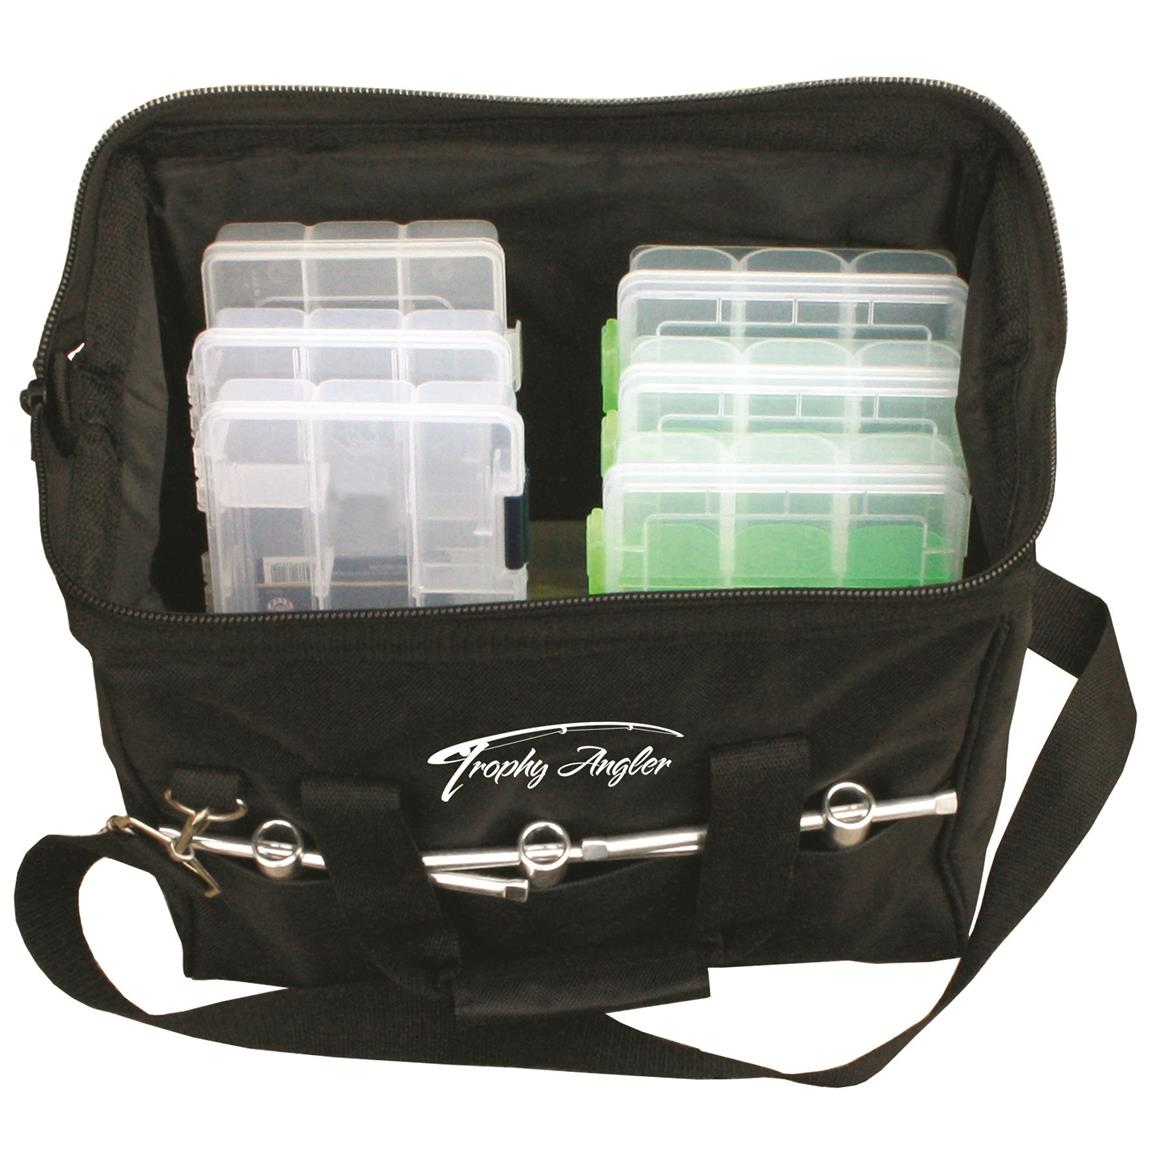 Multiple exterior pouches provide quick access to essentials